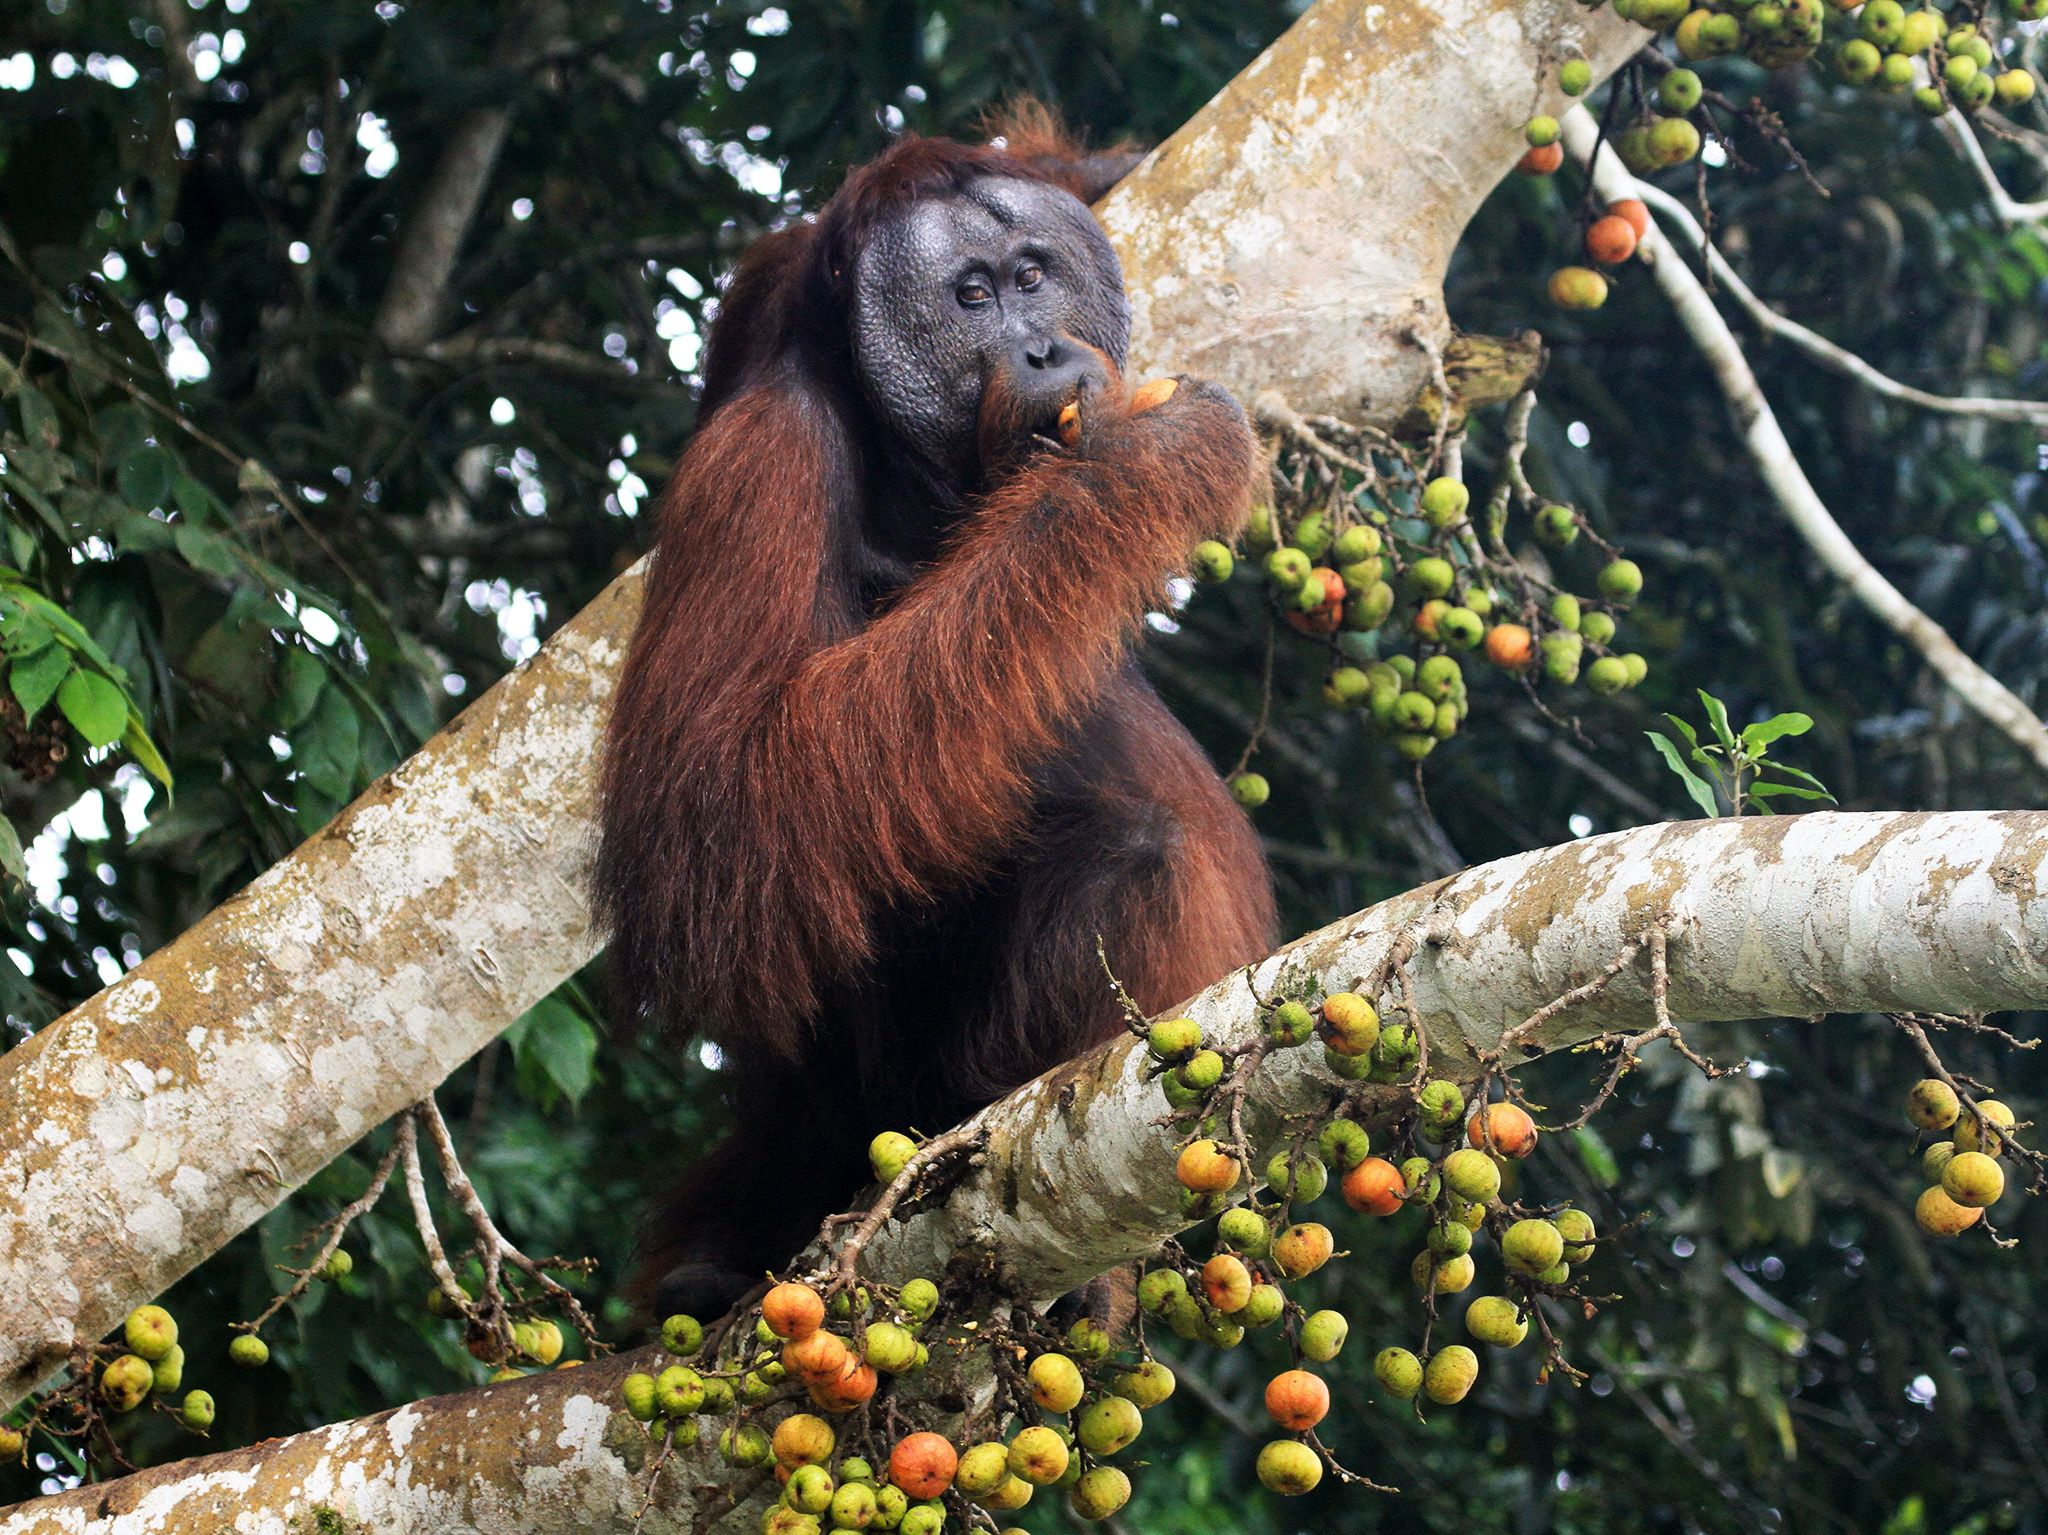 Borneo:  Mature male Orangutan sitting in tree amongst fig fruits, eating figs. This image is... [Photo of the day - 十月 2017]